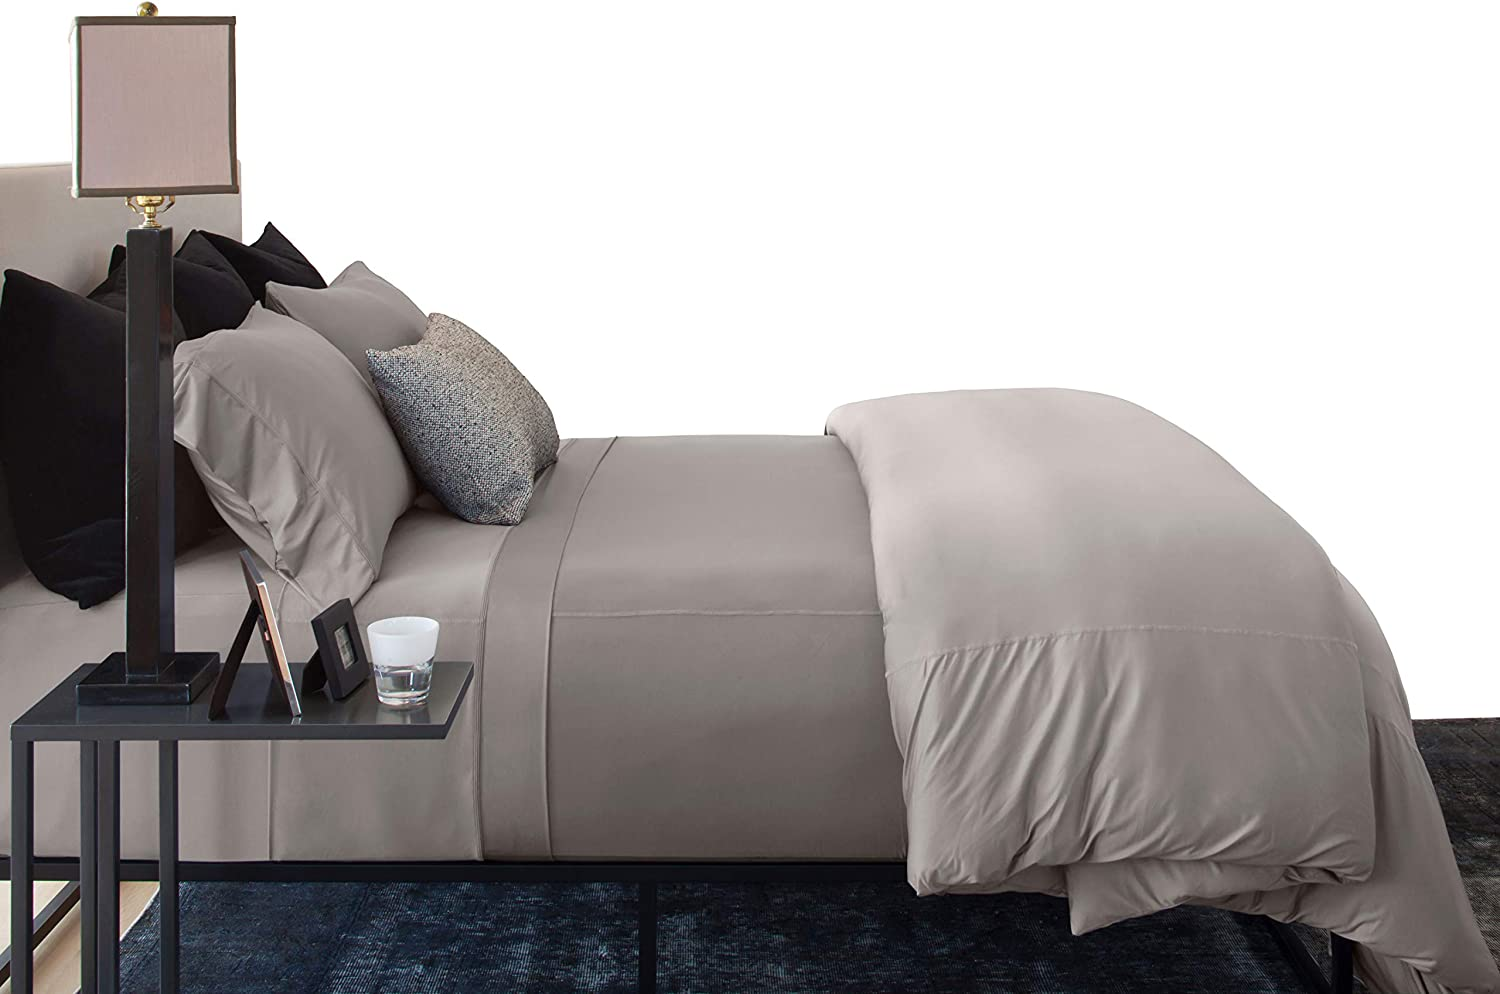 SHEEX Active Comfort Sheet Set Powered,Ultra-Soft, Breathes Better Than Cotton - Pewter, Queen